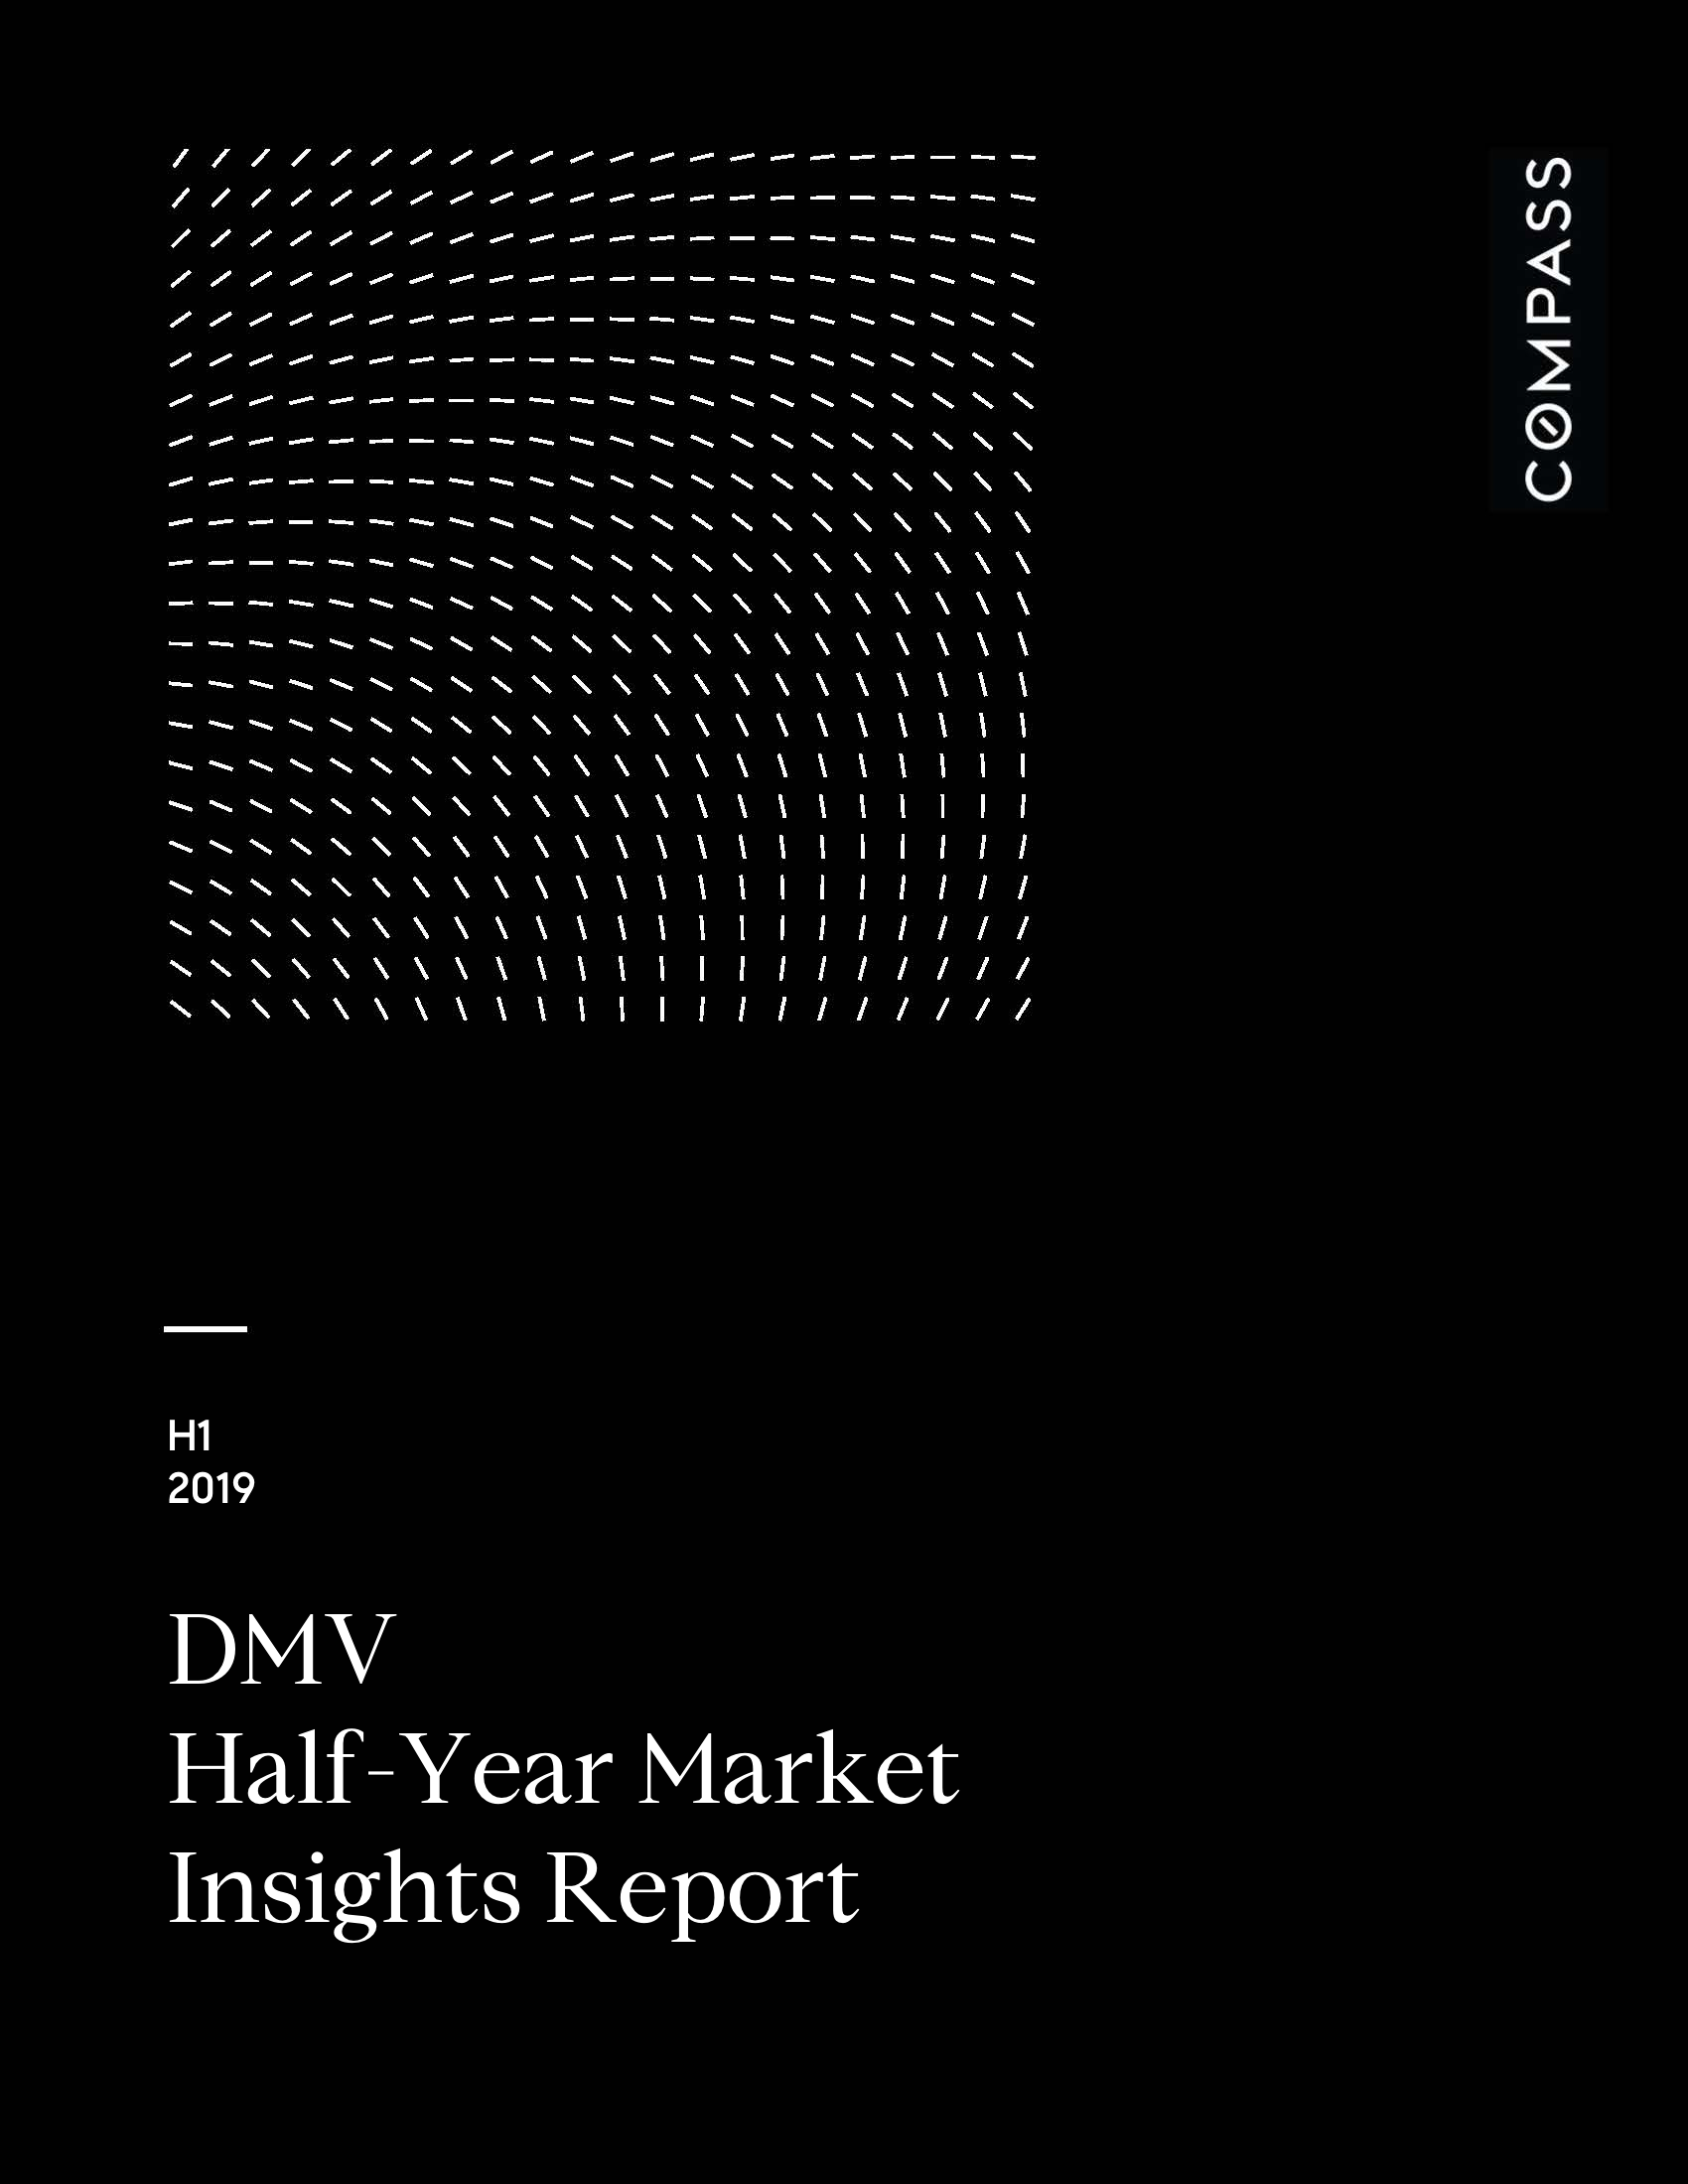 DMV Half-Year Market Insights Report - H1 2019